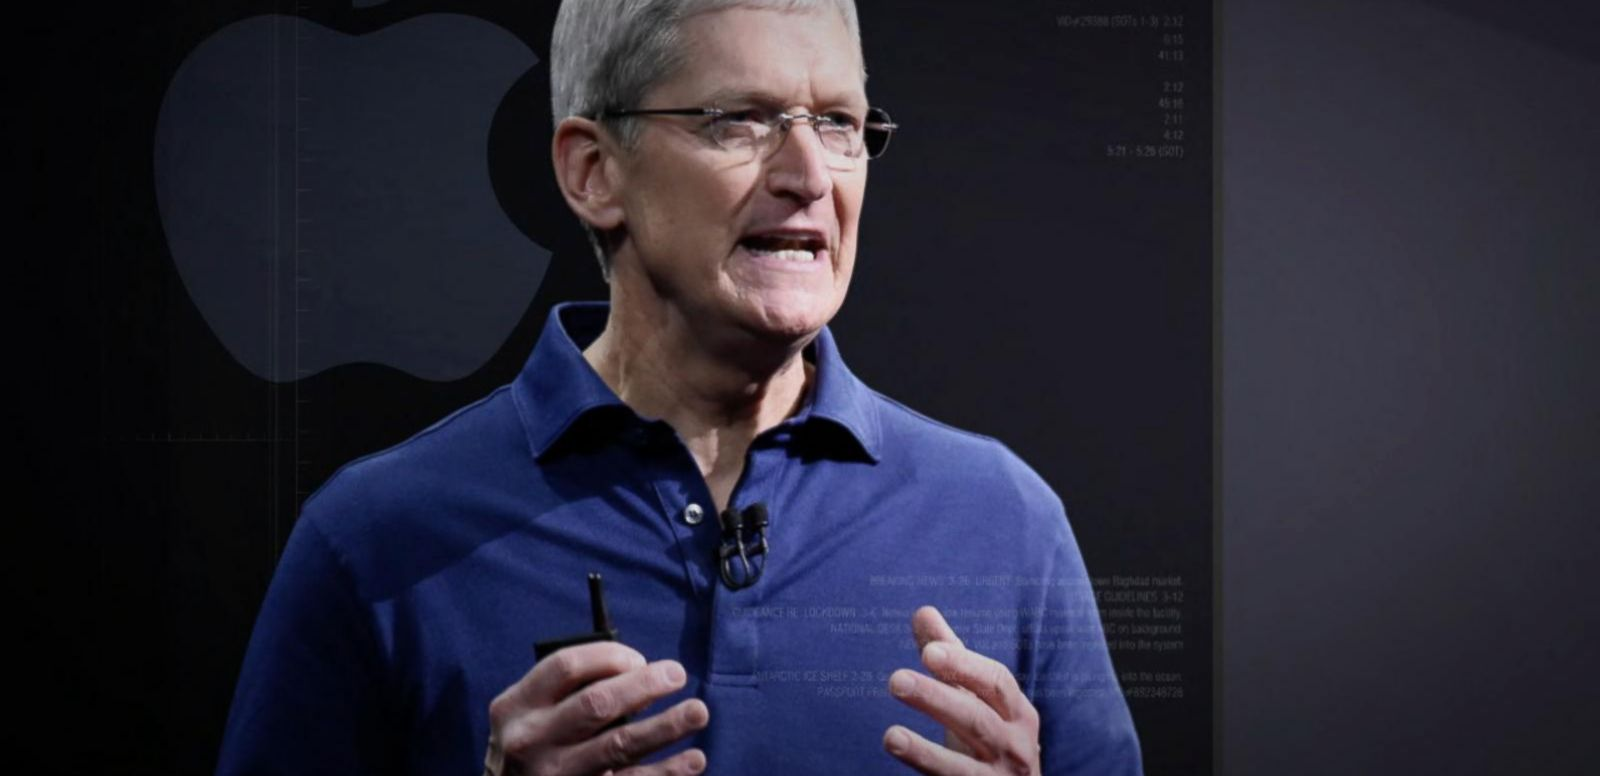 VIDEO: Apple CEO Tim Cook Stands Firm Against the FBI